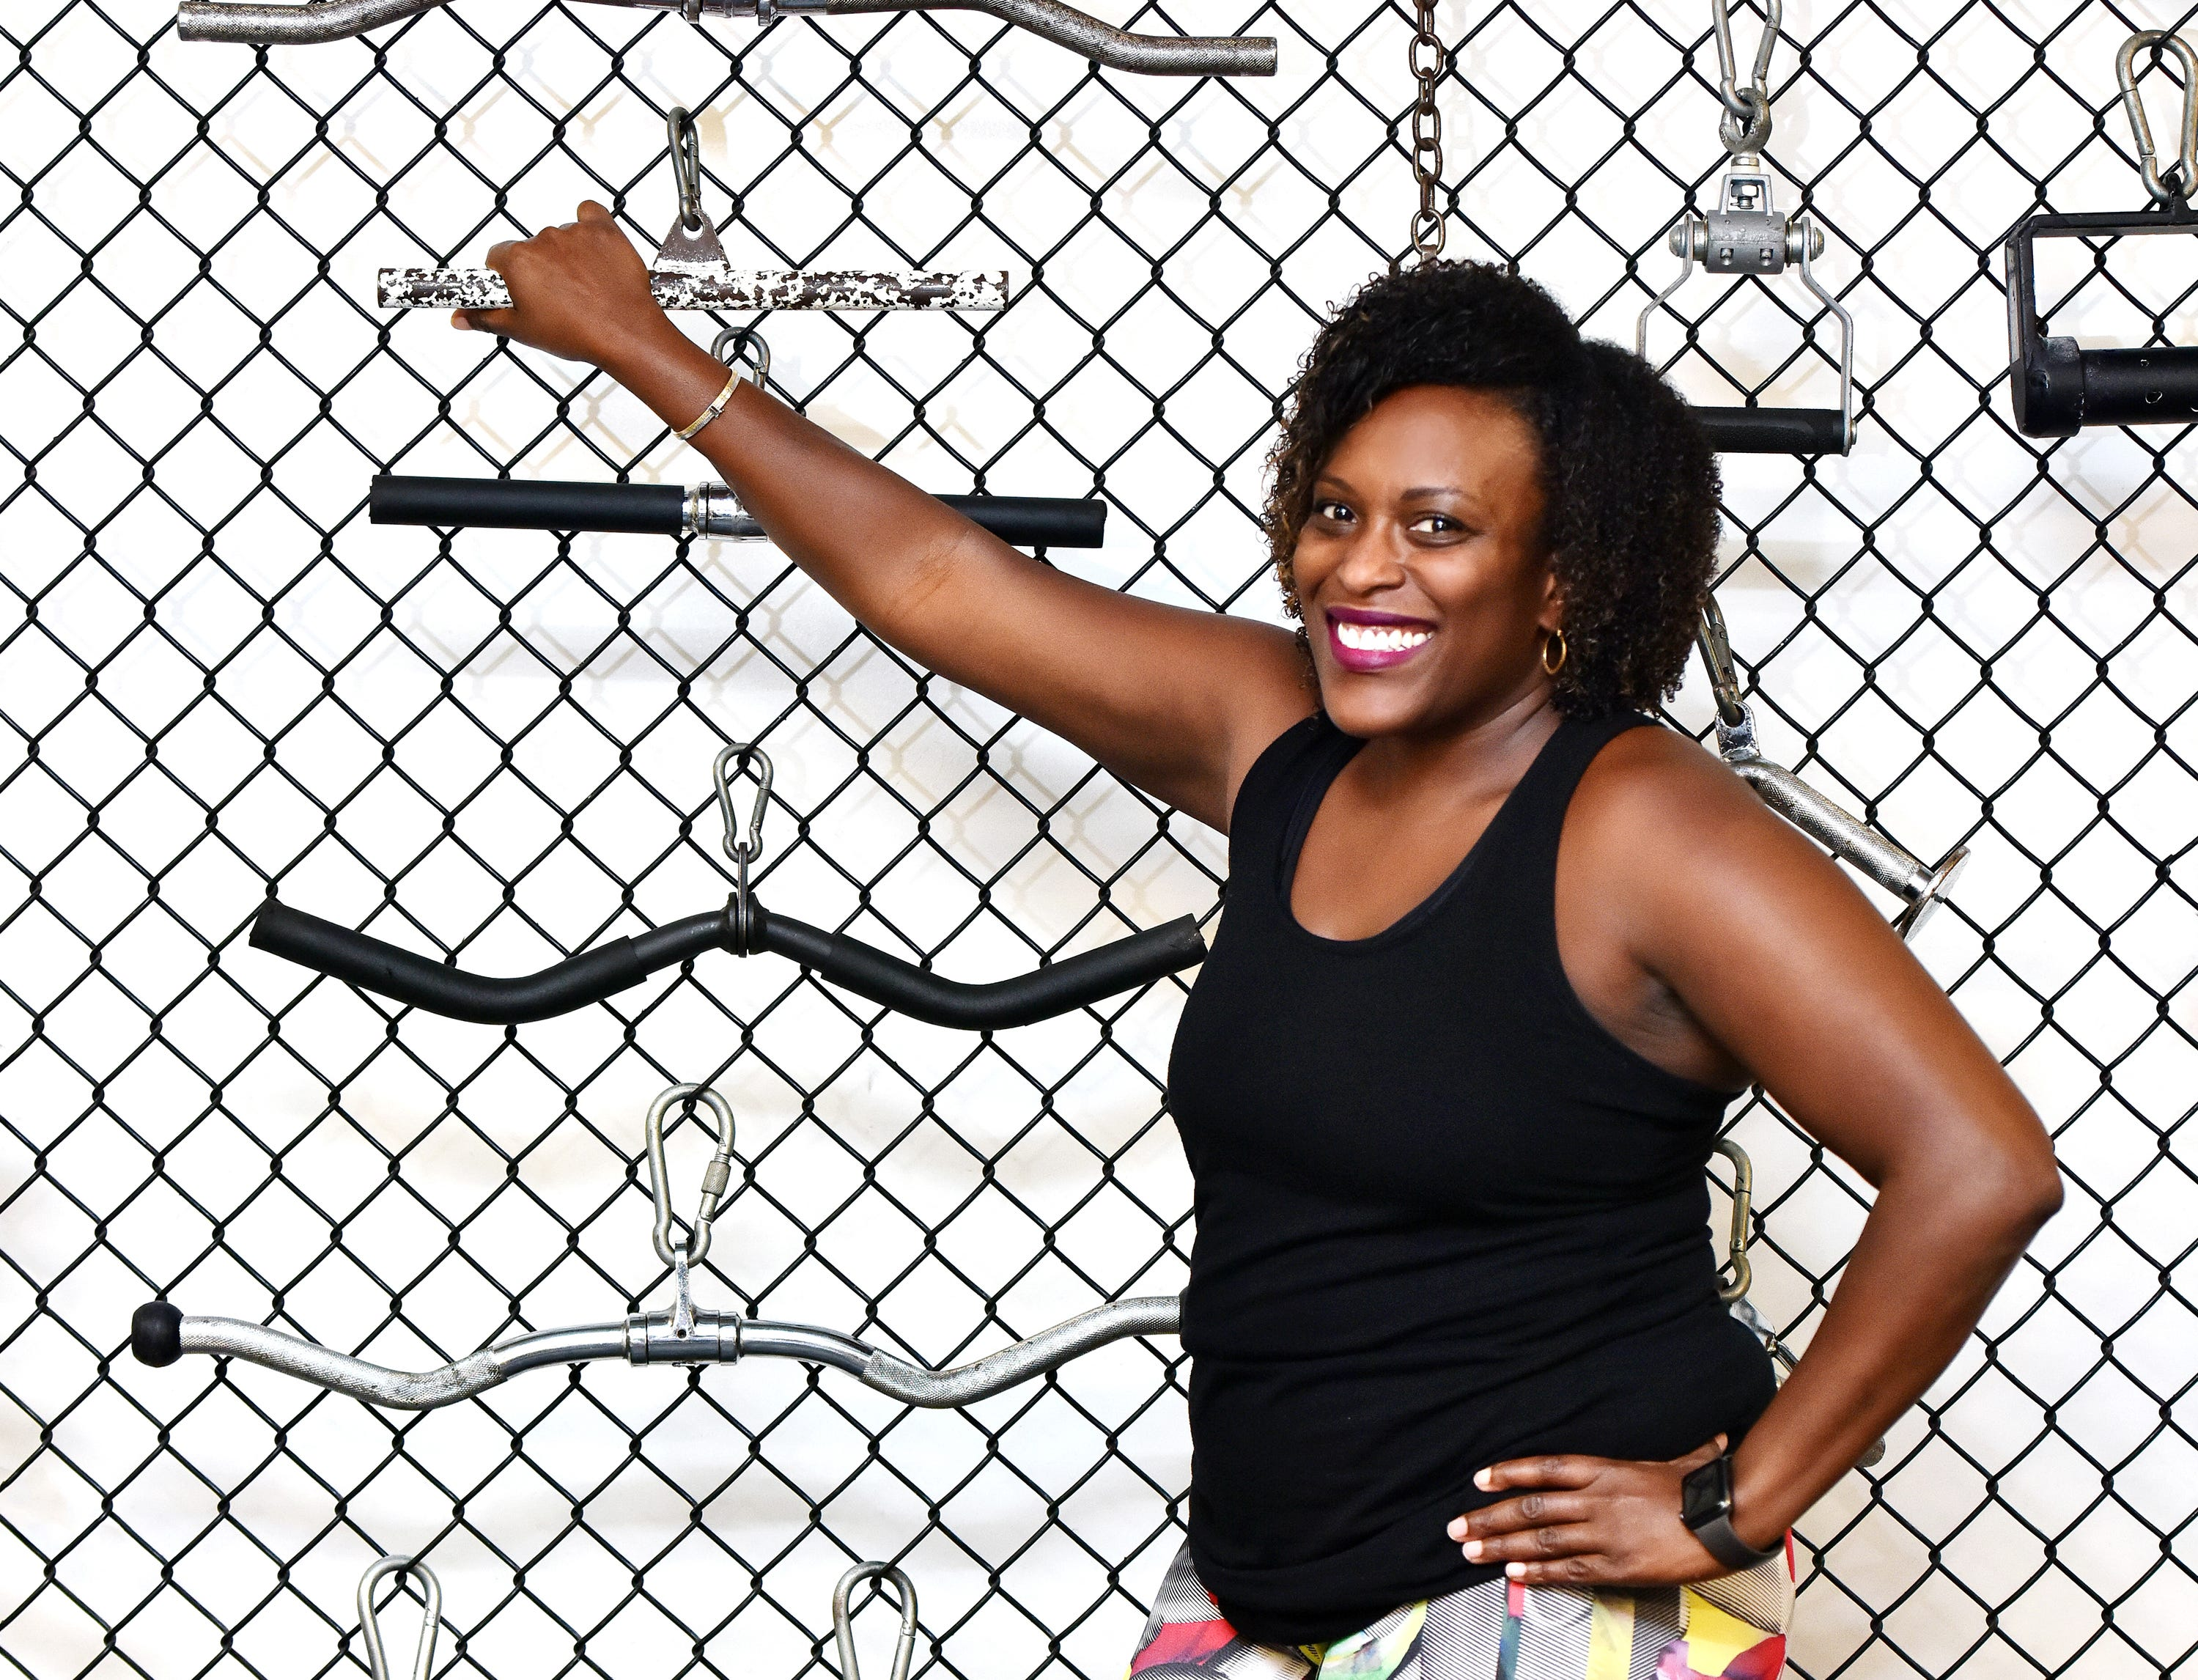 Jil Littlejohn vowed to put her health first and now works out with a trainer at Brit's Brothers Gym in Greenville.